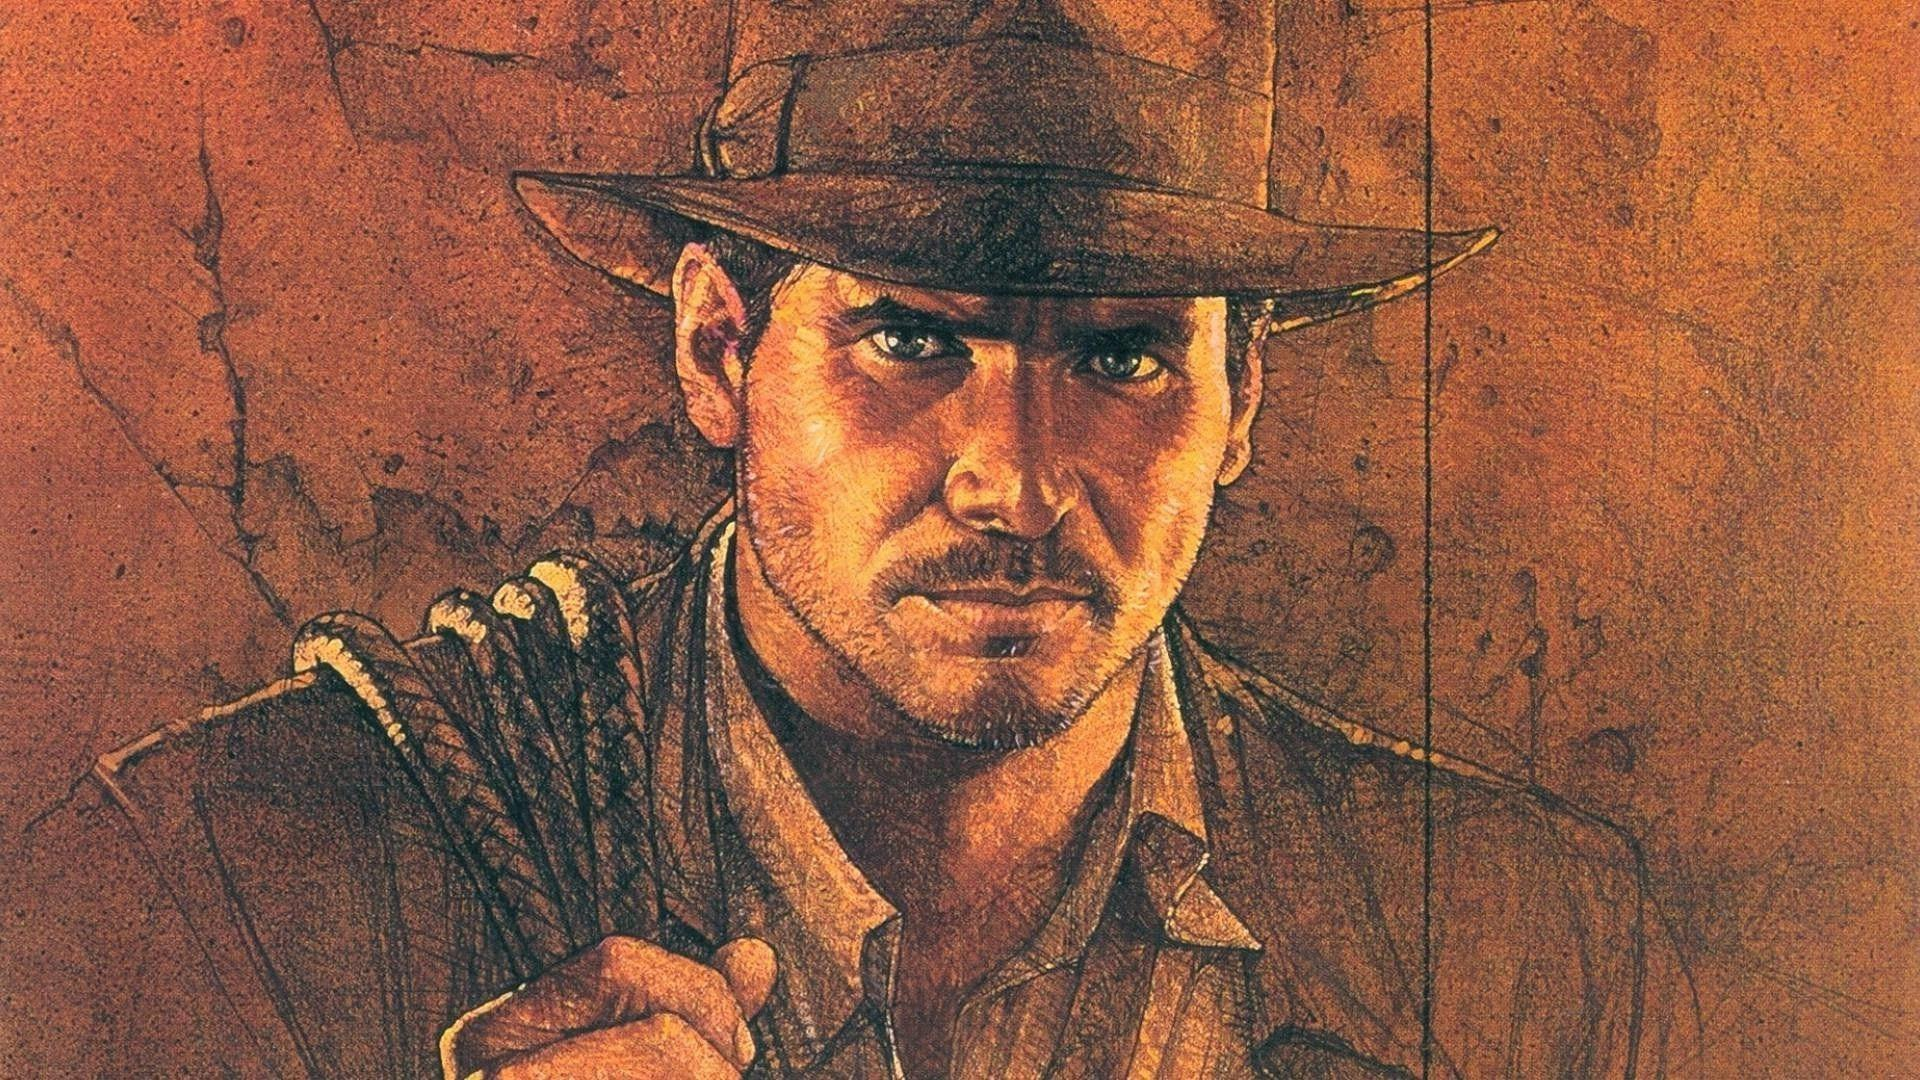 indiana jones adventure wallpaper - photo #1